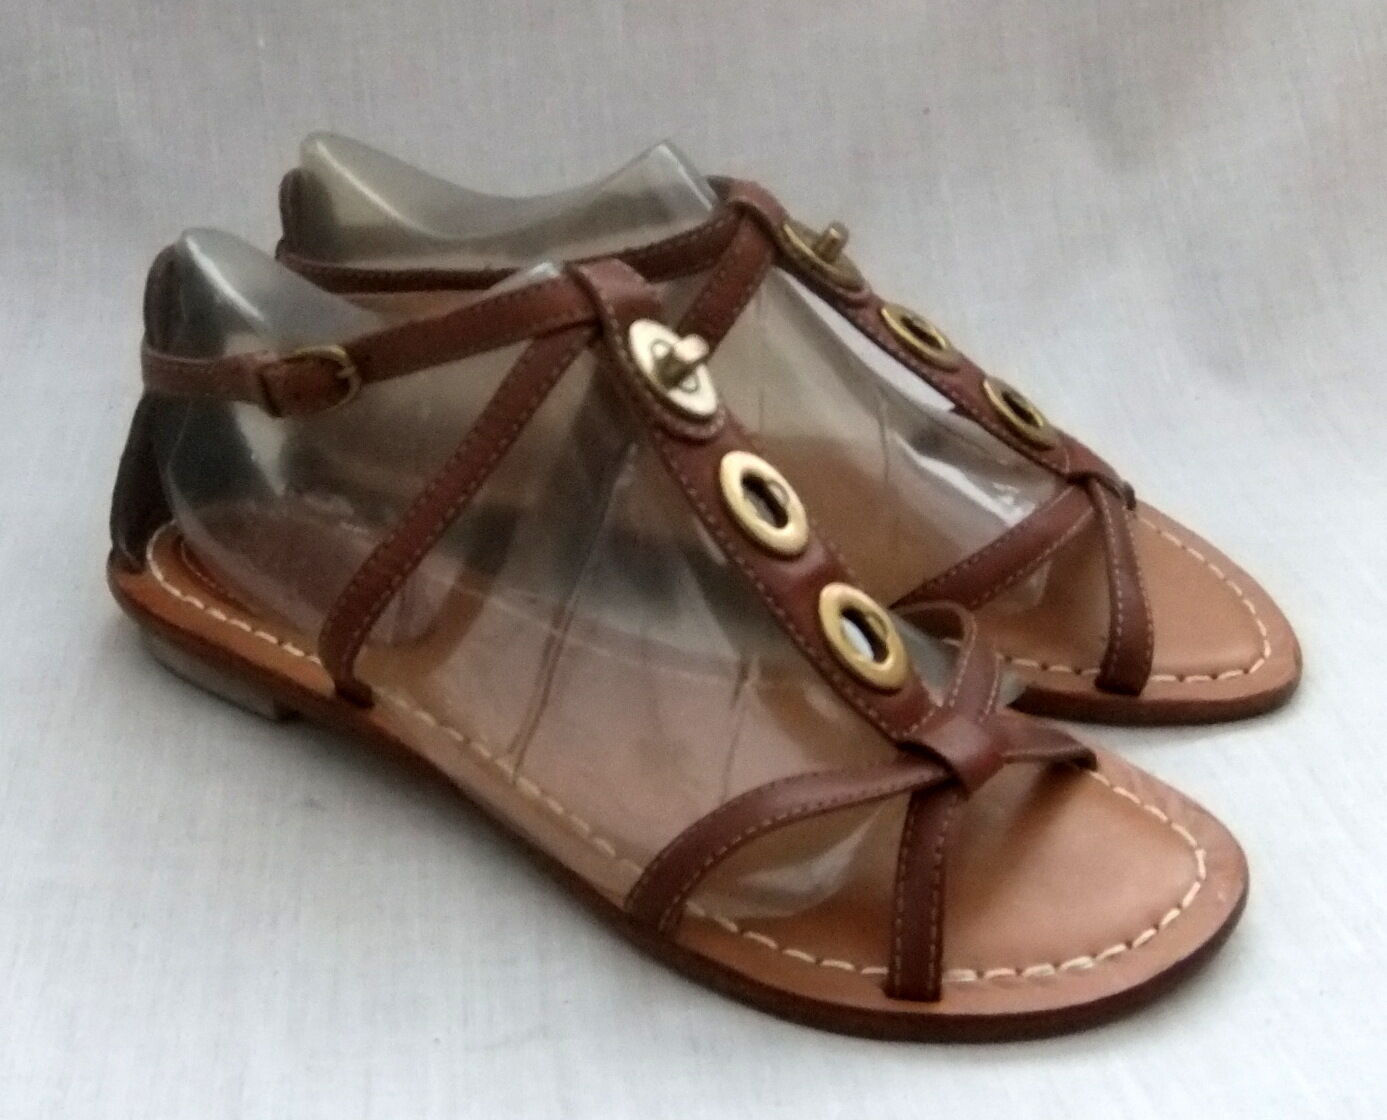 NEW CLARKS SURF MARK femmes TAN LEATHER SANDALS Taille 6   39.5